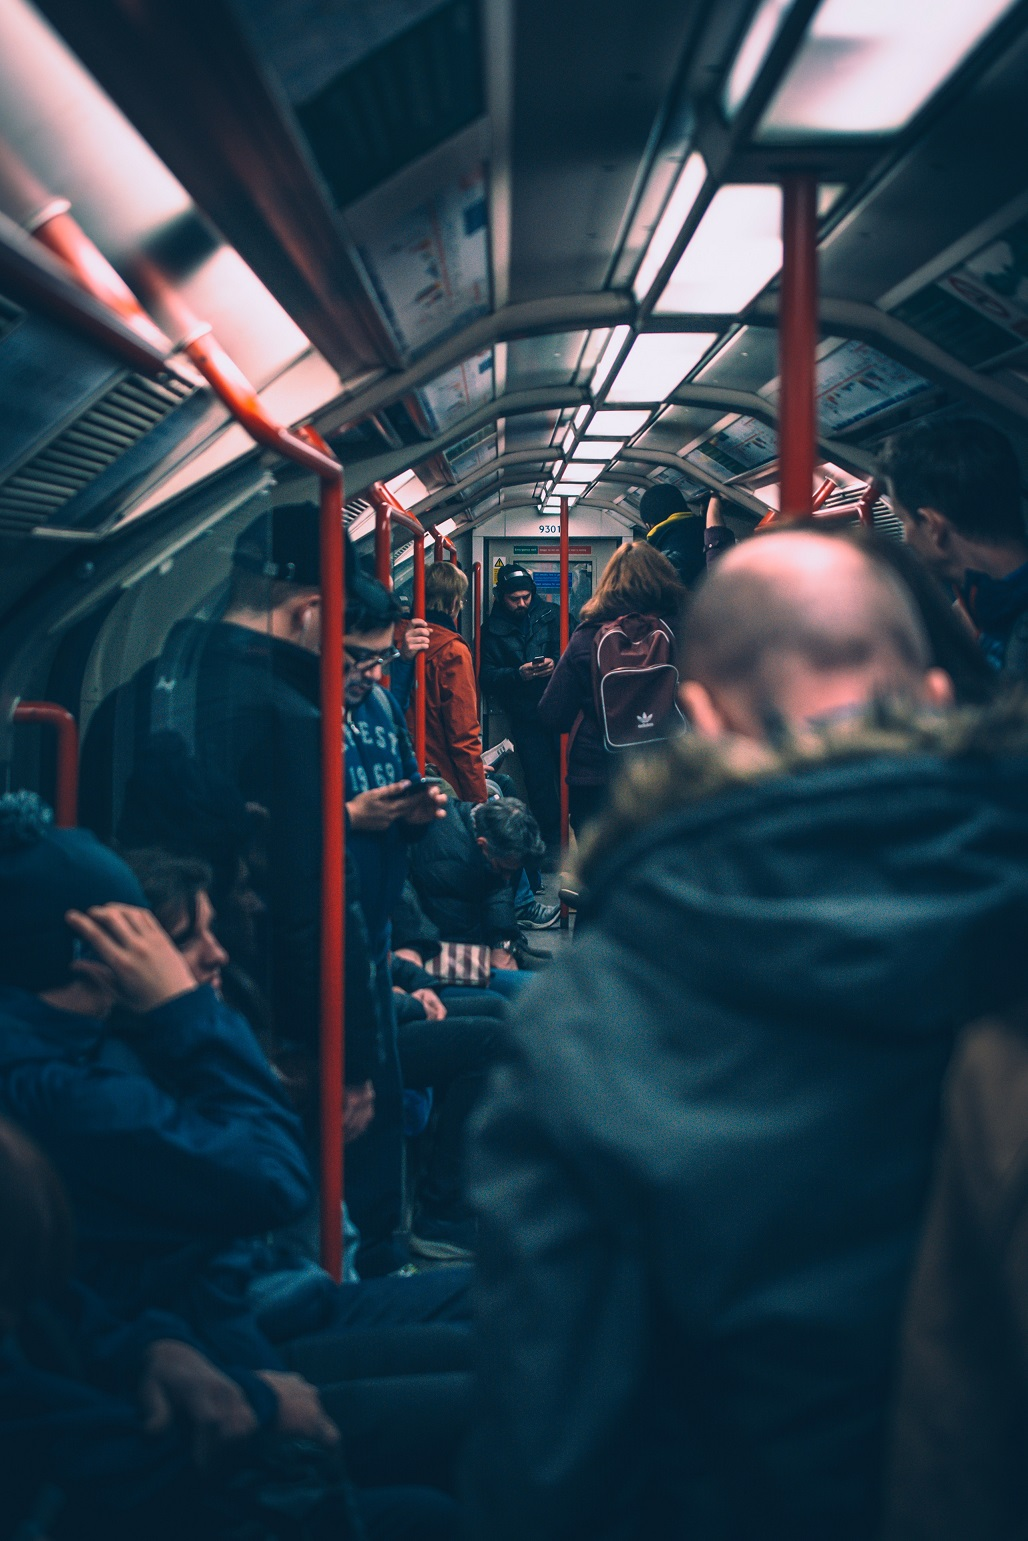 Playing Ambient Music for Commuting – Make Stressful Hours More Bearable